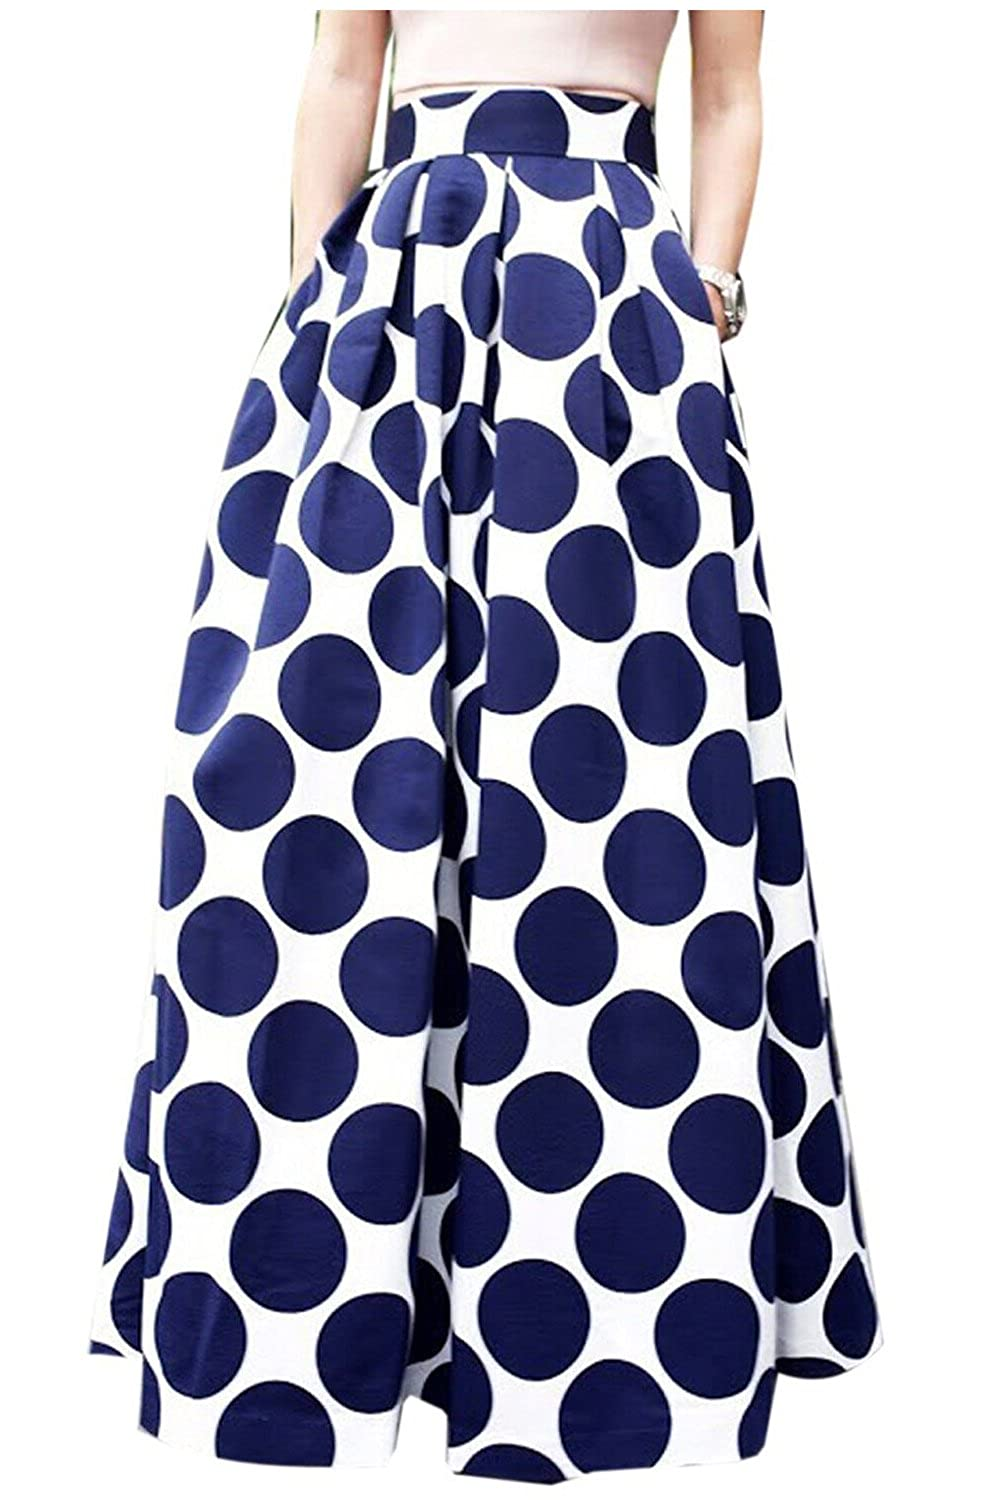 Aifer Women's White Contrast Polka Dot Print A-Line Pleated Maxi Skirt